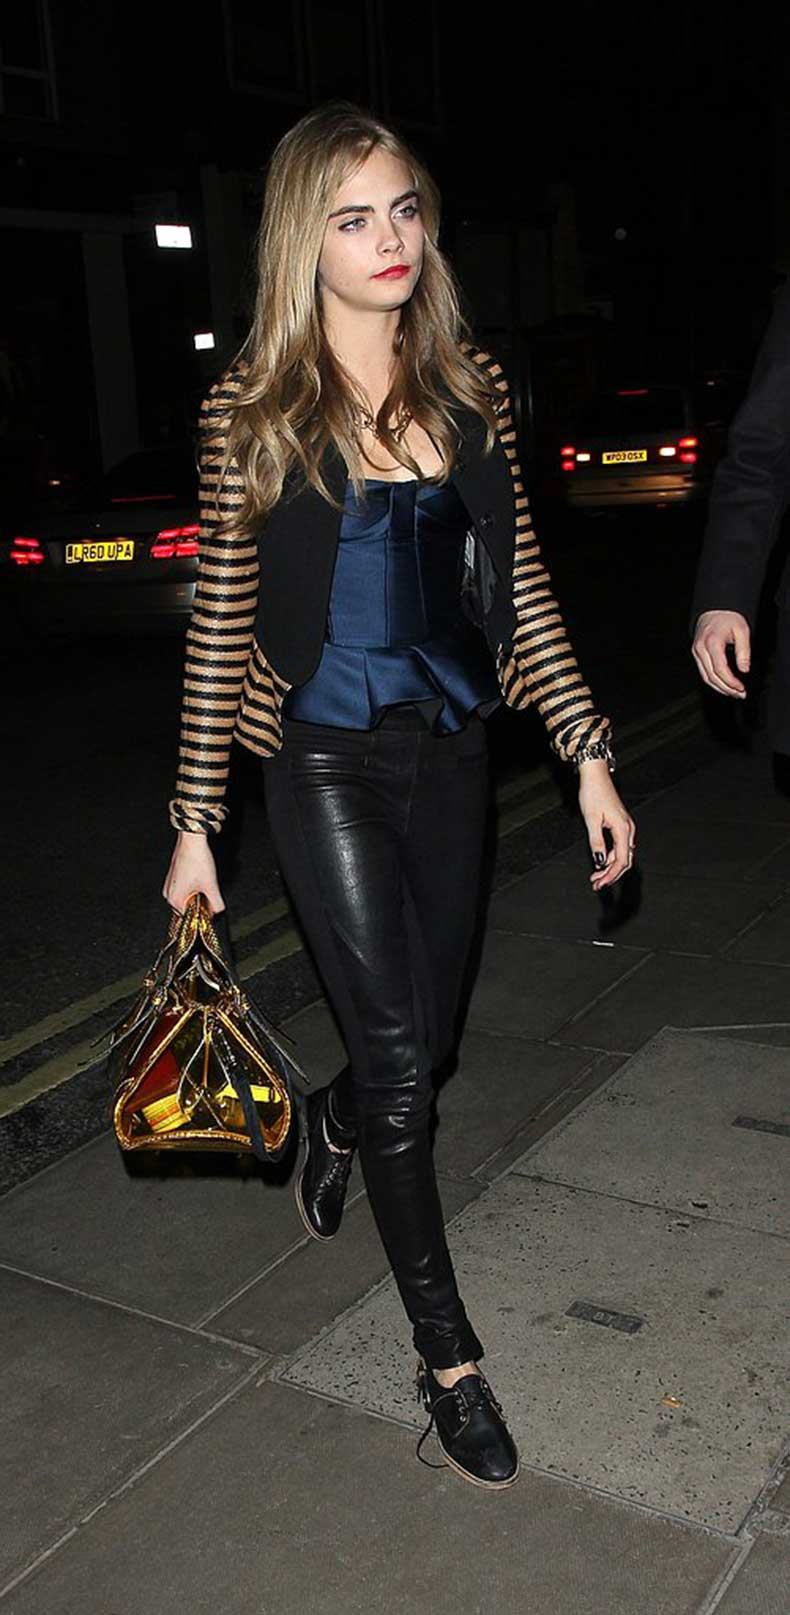 During-fancy-night-out-London-Cara-Delevingne-kept-luxe